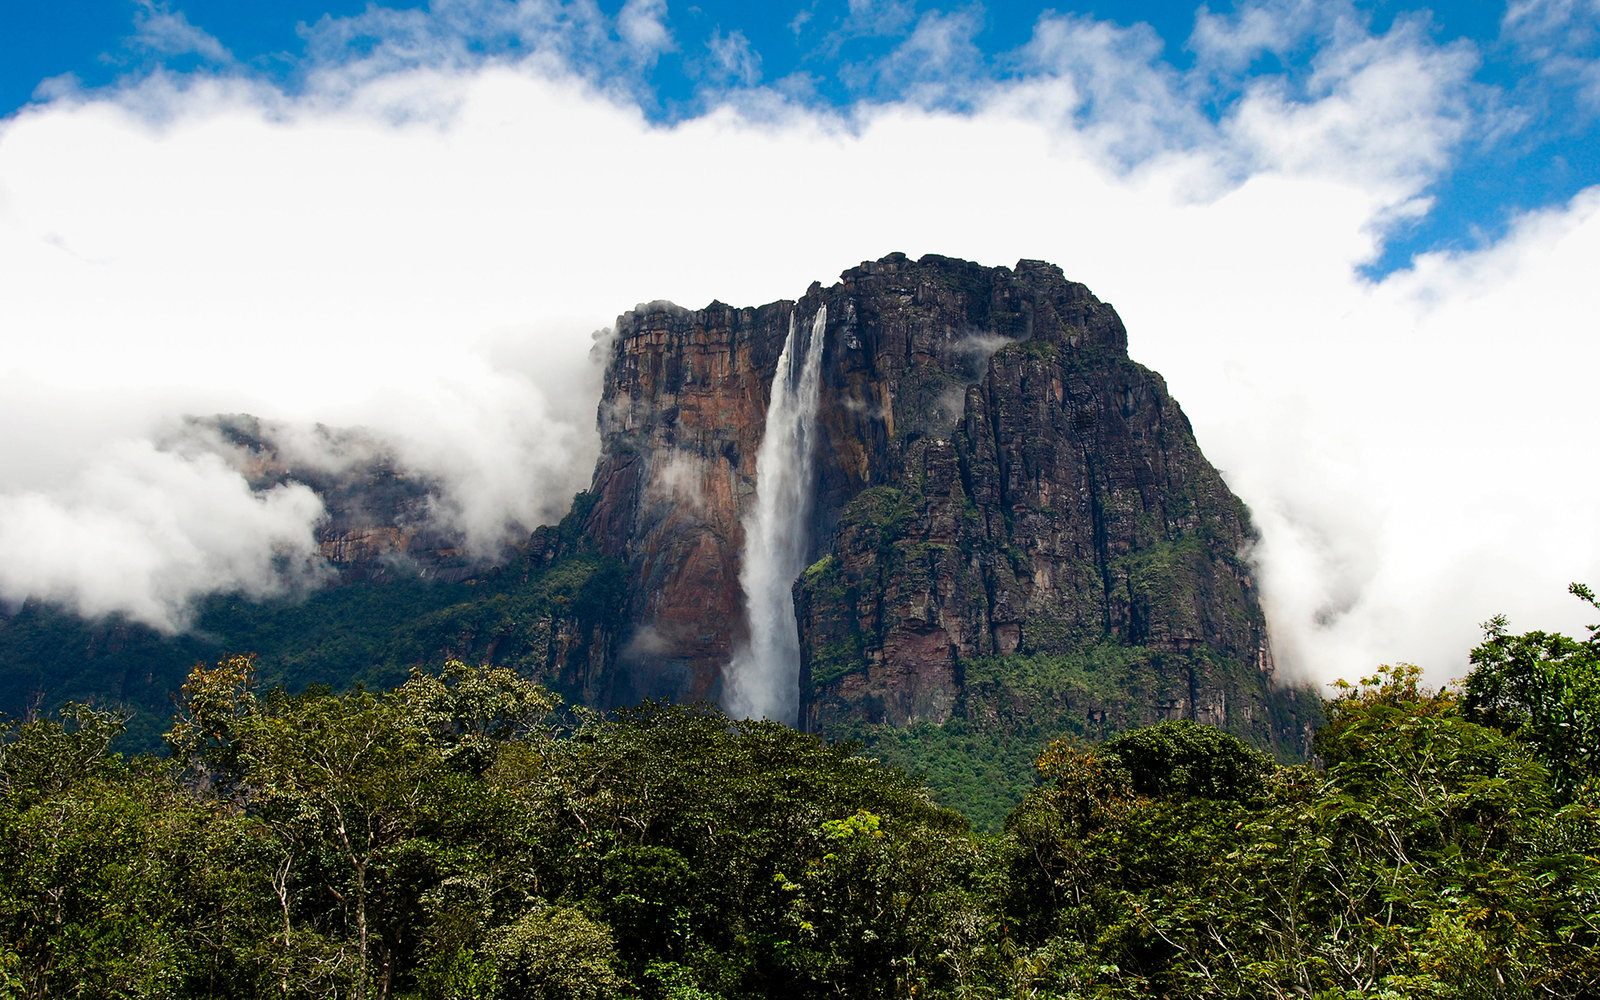 DGYGMT Angel Falls or Salto Angel, the highest waterfall in the world, Canaima National Park, Venezuela, South America